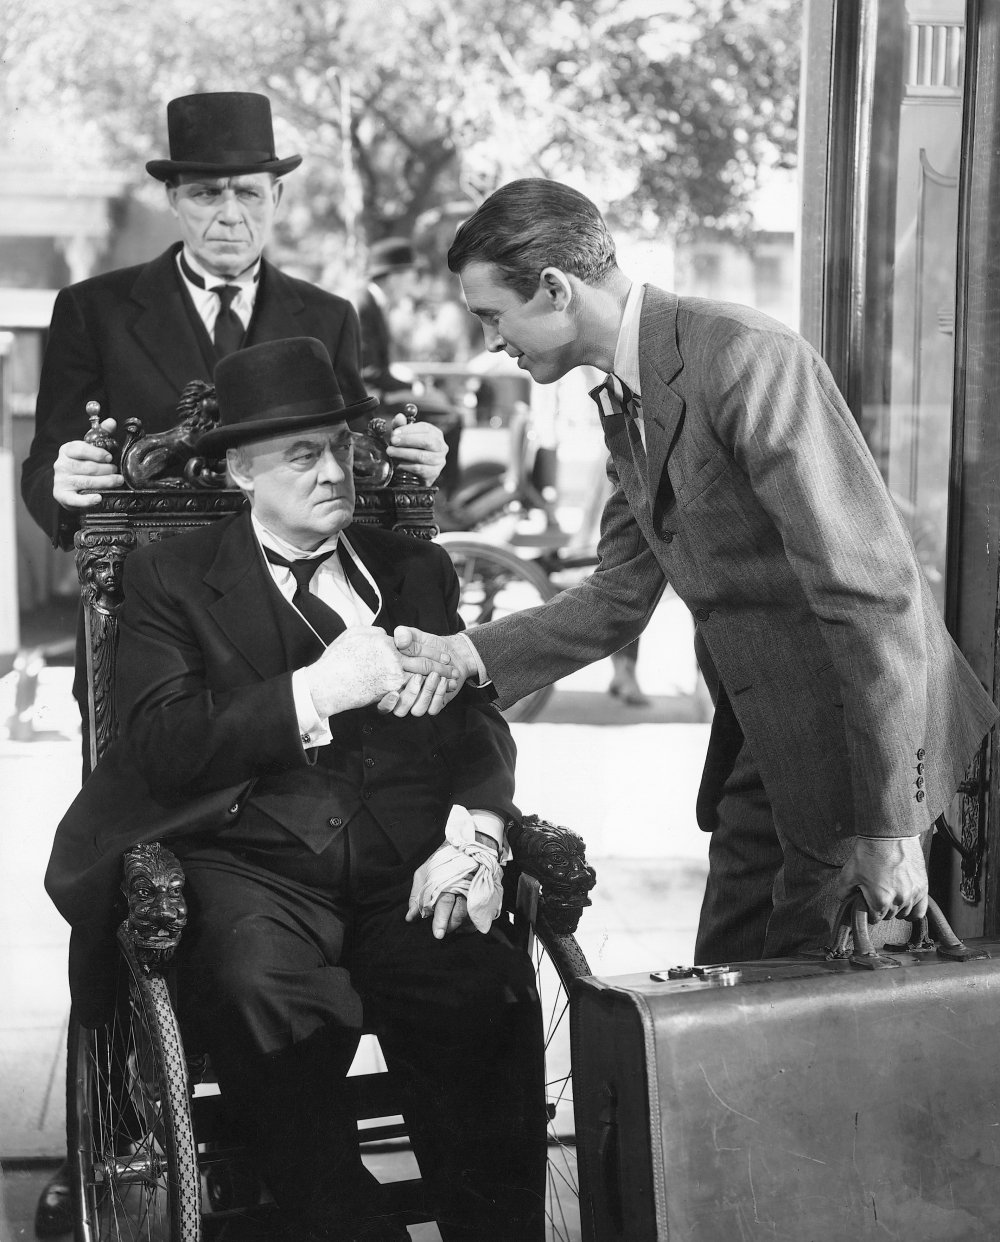 its-a-wonderful-life-1947-006-lionel-barrymore-on-wheelchair-and-james-stewart-shake-hands-00m-d52.jpg